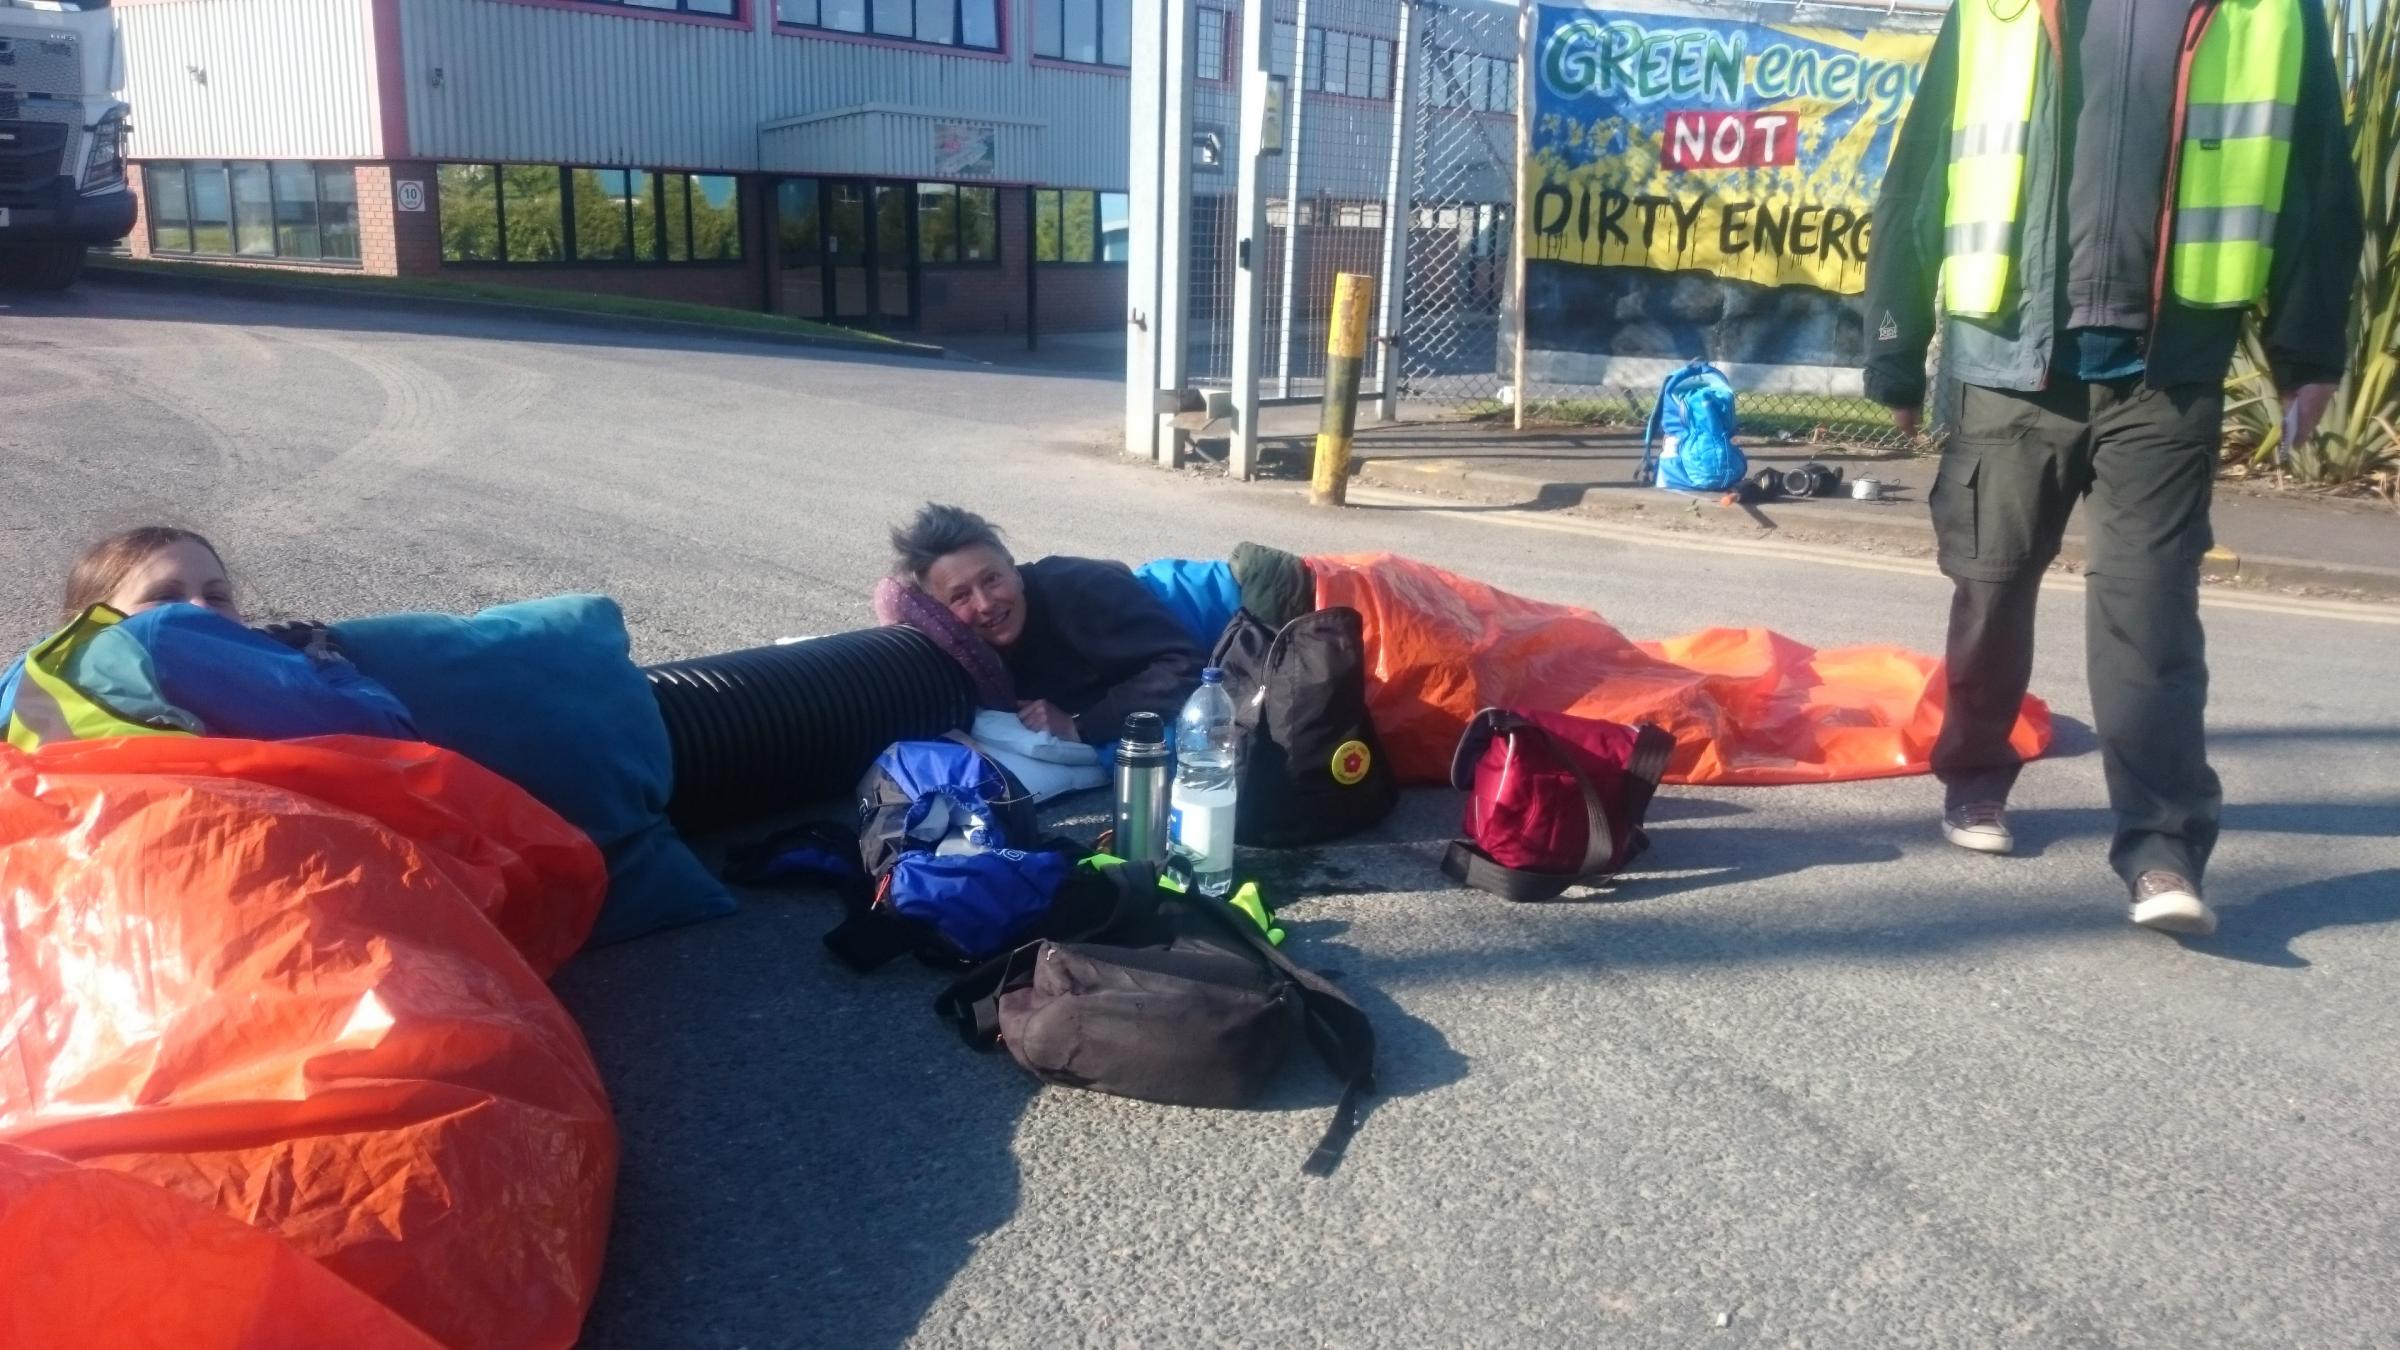 PROTEST: The two campaigners lying in the road